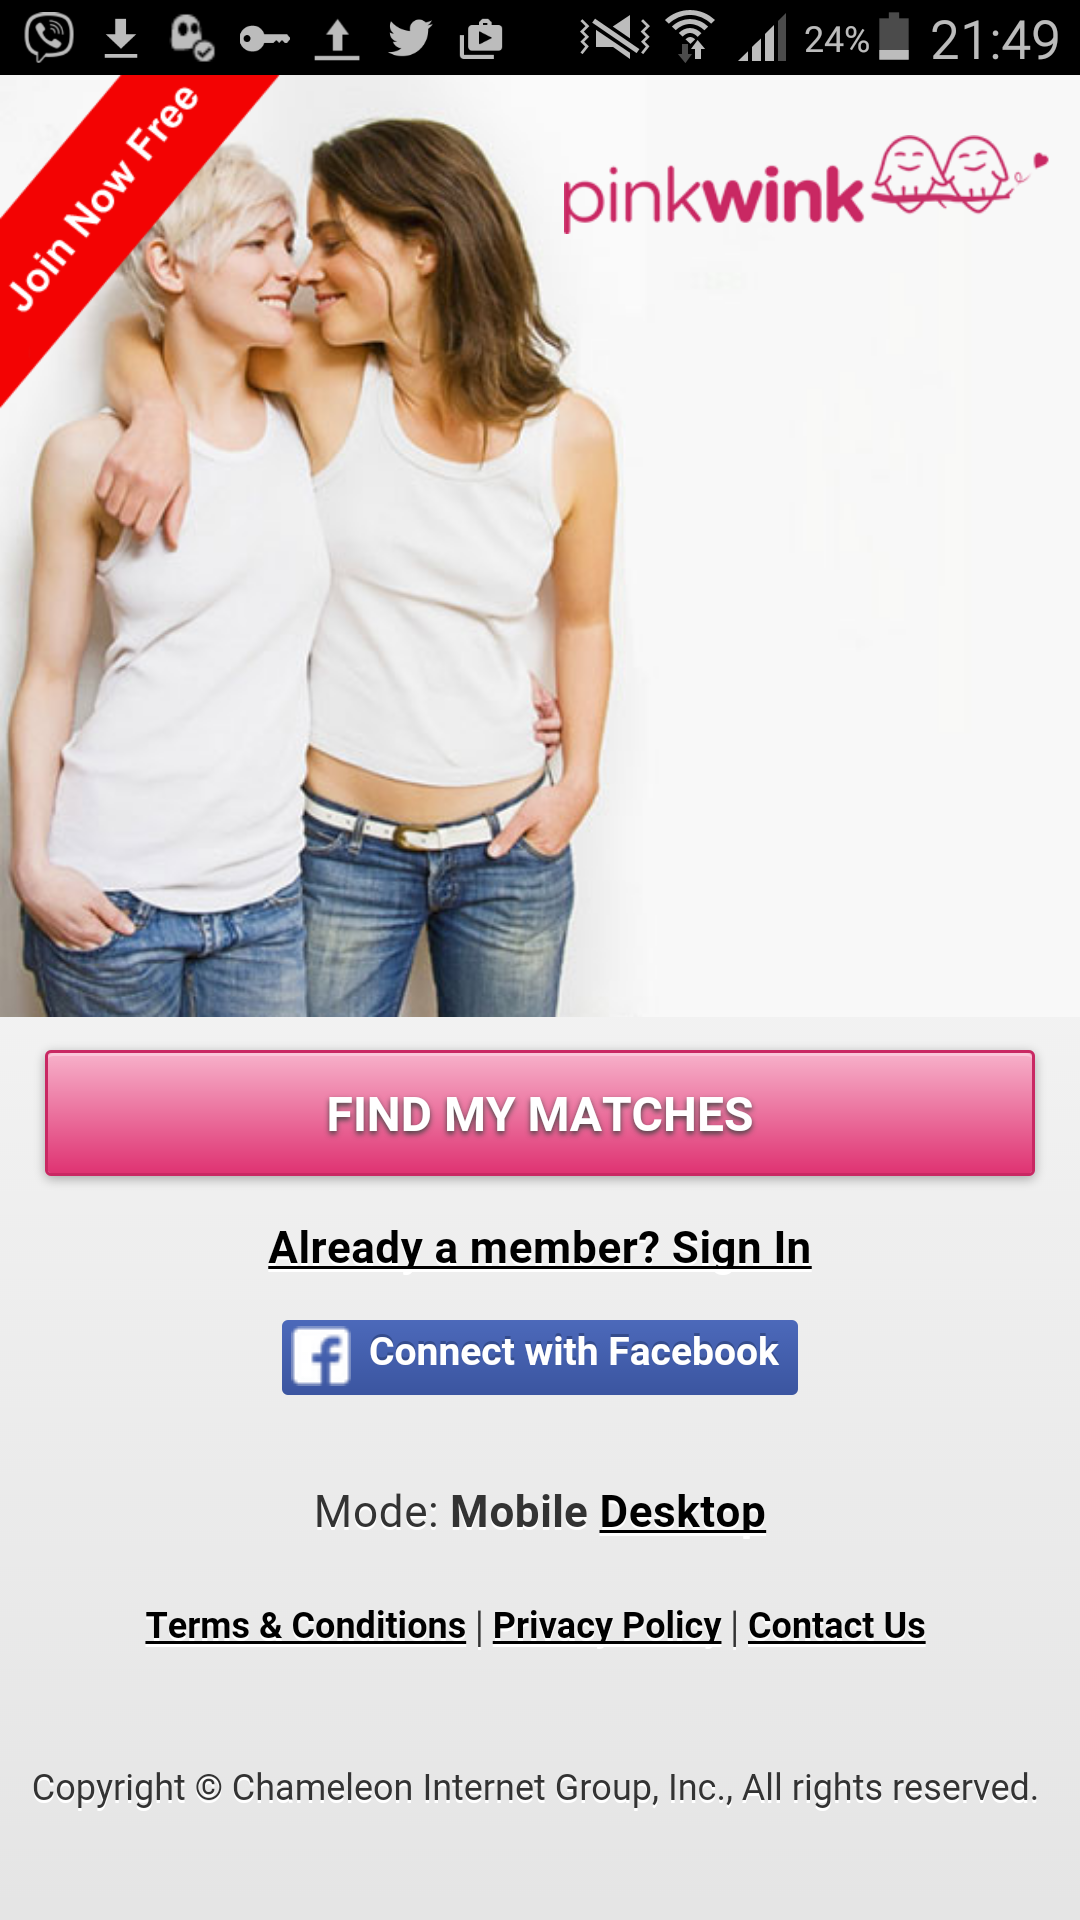 willimantic lesbian dating site Meetups in providence these are just some of the different kinds of meetup groups you can find near providence sign me up  providence lesbian happy hour.